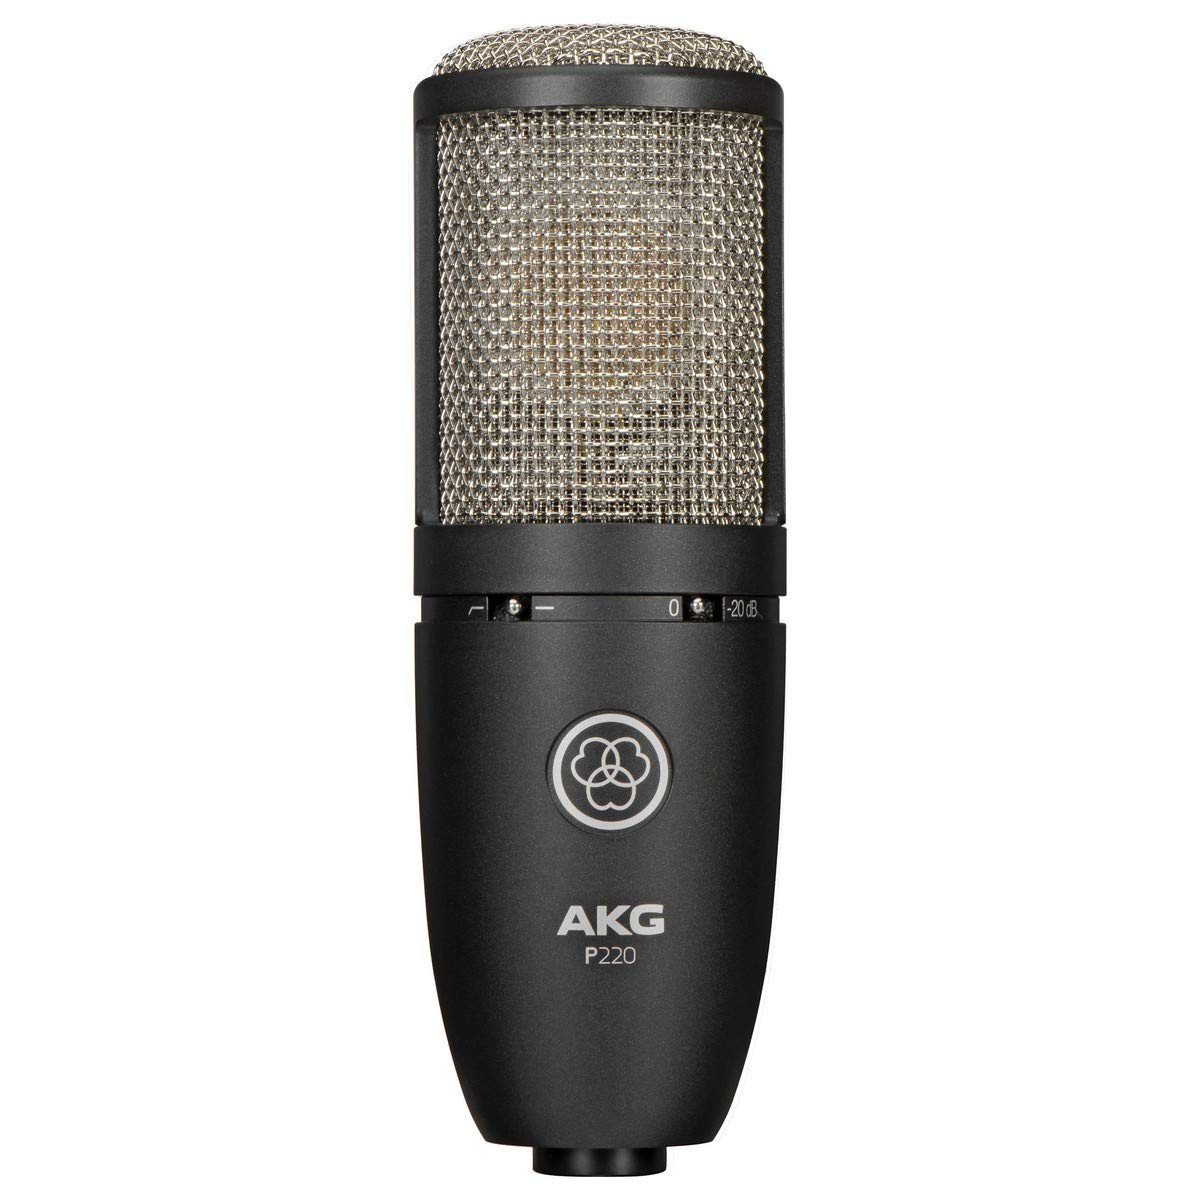 AKG Vocal Condenser Microphone, Black, 6.00 x 8.00 x 12.00'' (3101H00420) by AKG (Image #1)